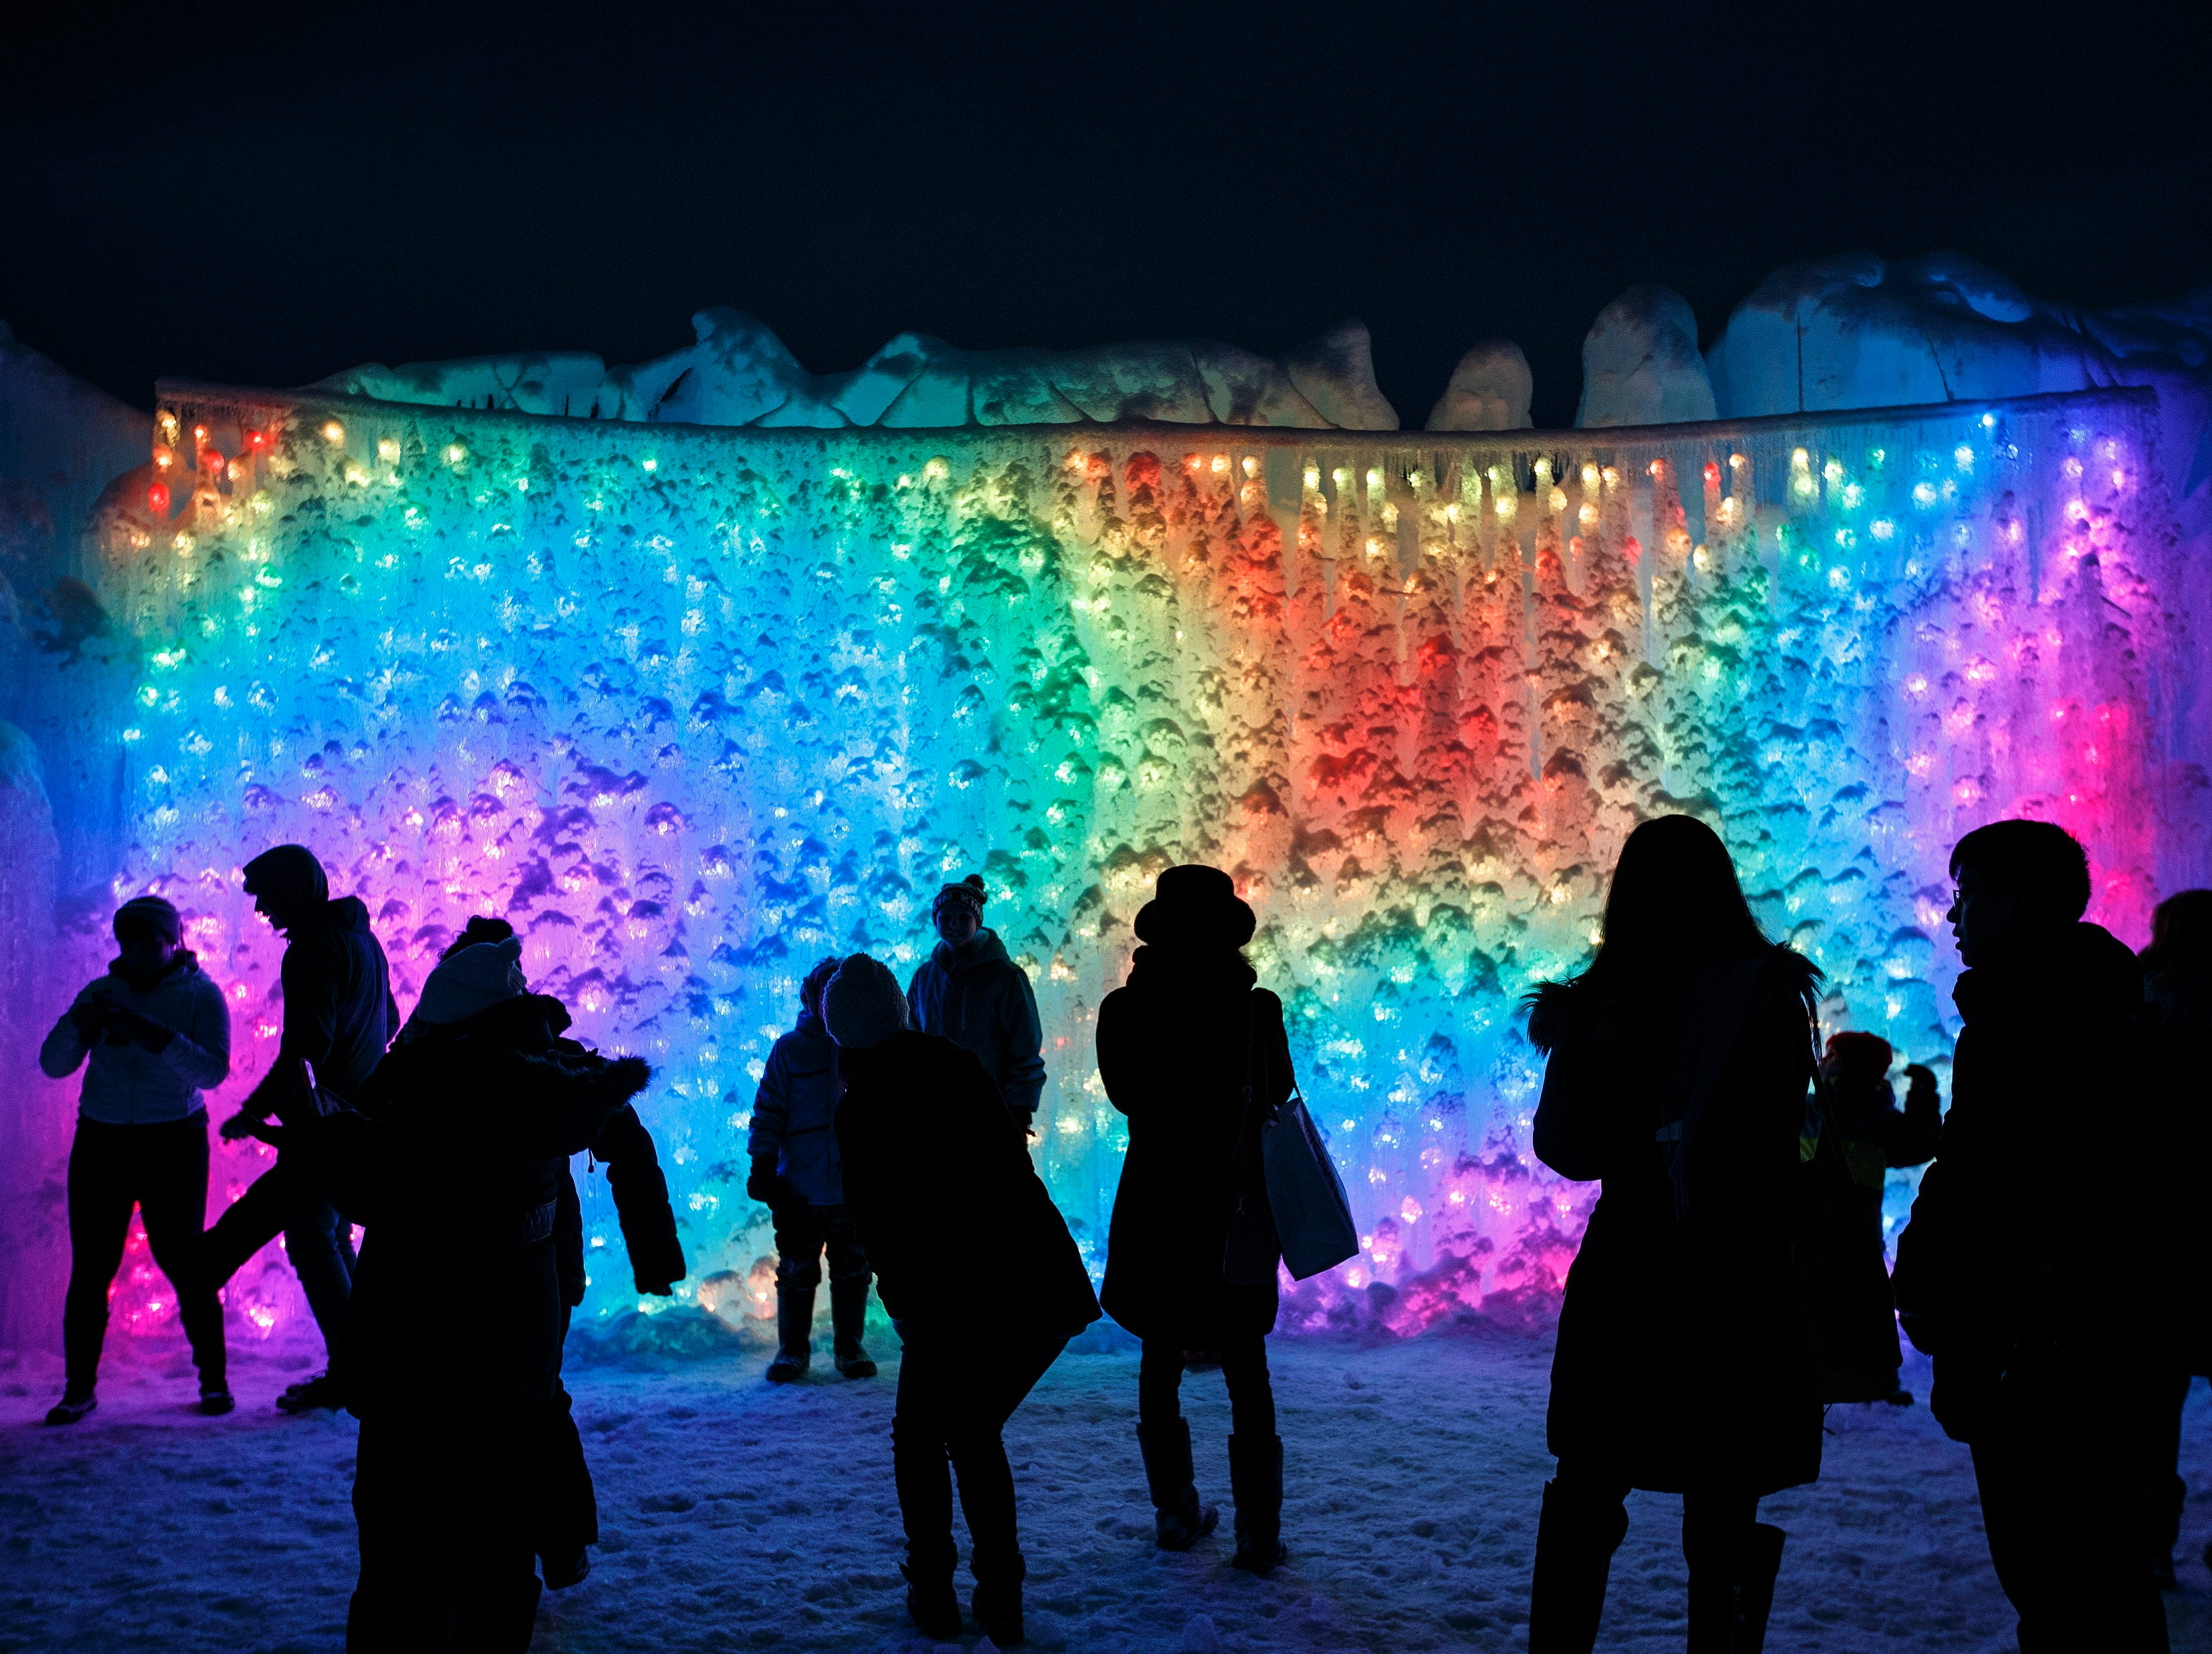 Visitors gather around an ice wall inside an Ice Castle in Edmonton Alberta, on Friday, Jan. 4, 2019. The attraction was built by Ice Castles, LLC and features ice-carved tunnels, fountains, slides, frozen thrones, and cascading towers of ice embedded with color-changing LED lights that twinkle to music at night.